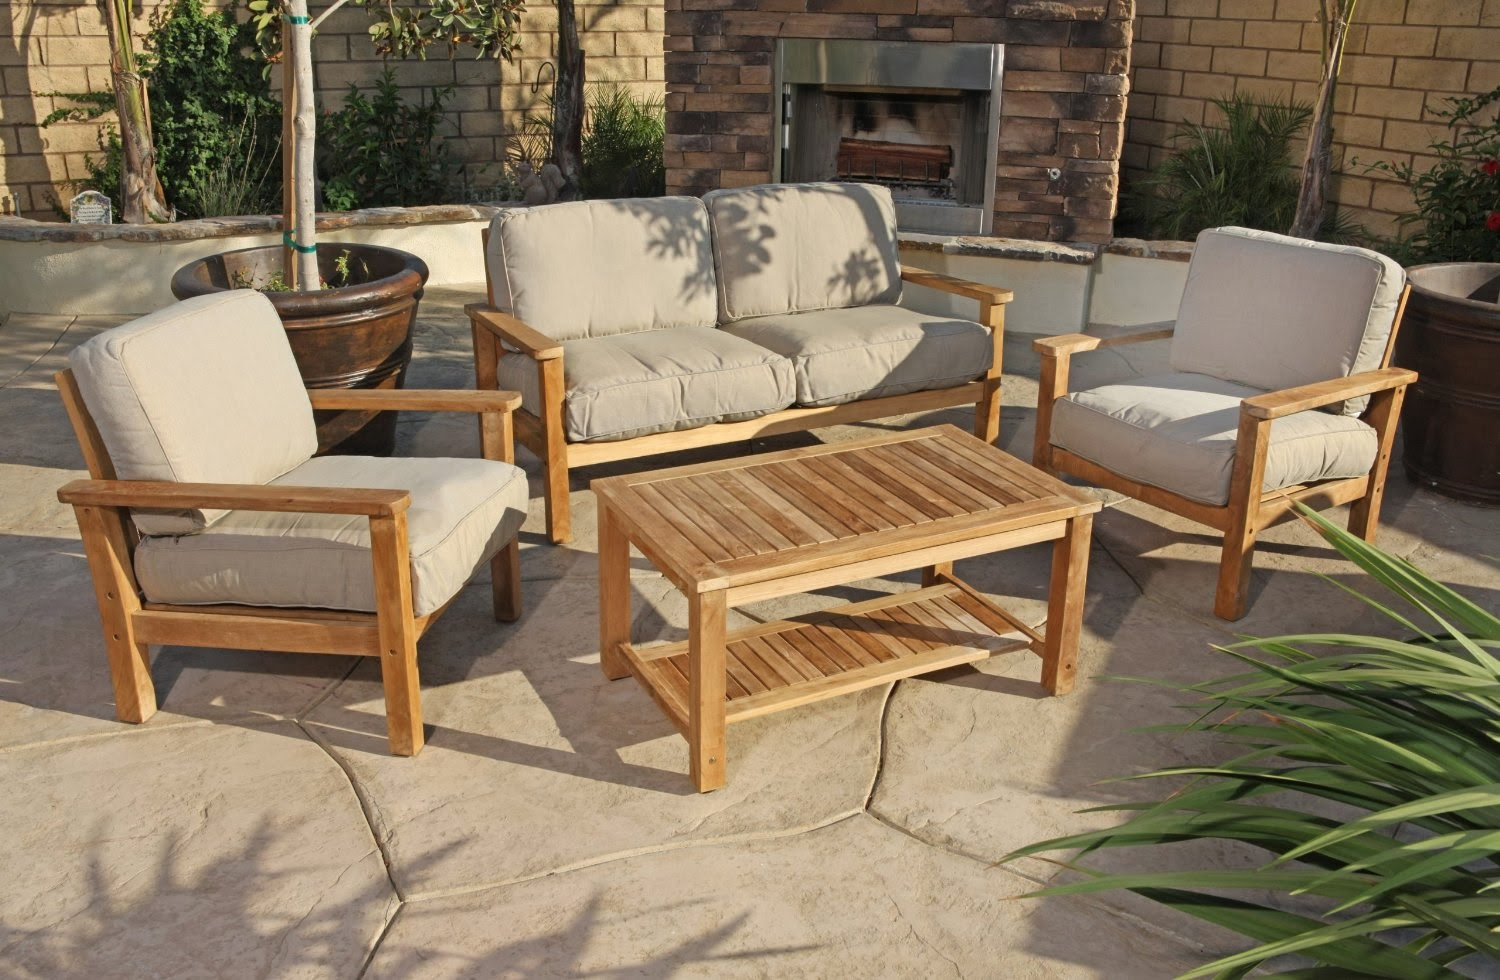 Best ideas about Wooden Patio Furniture . Save or Pin Outdoor Teak Sofa Uk Announcing Our Newest Outdoor Teak Now.